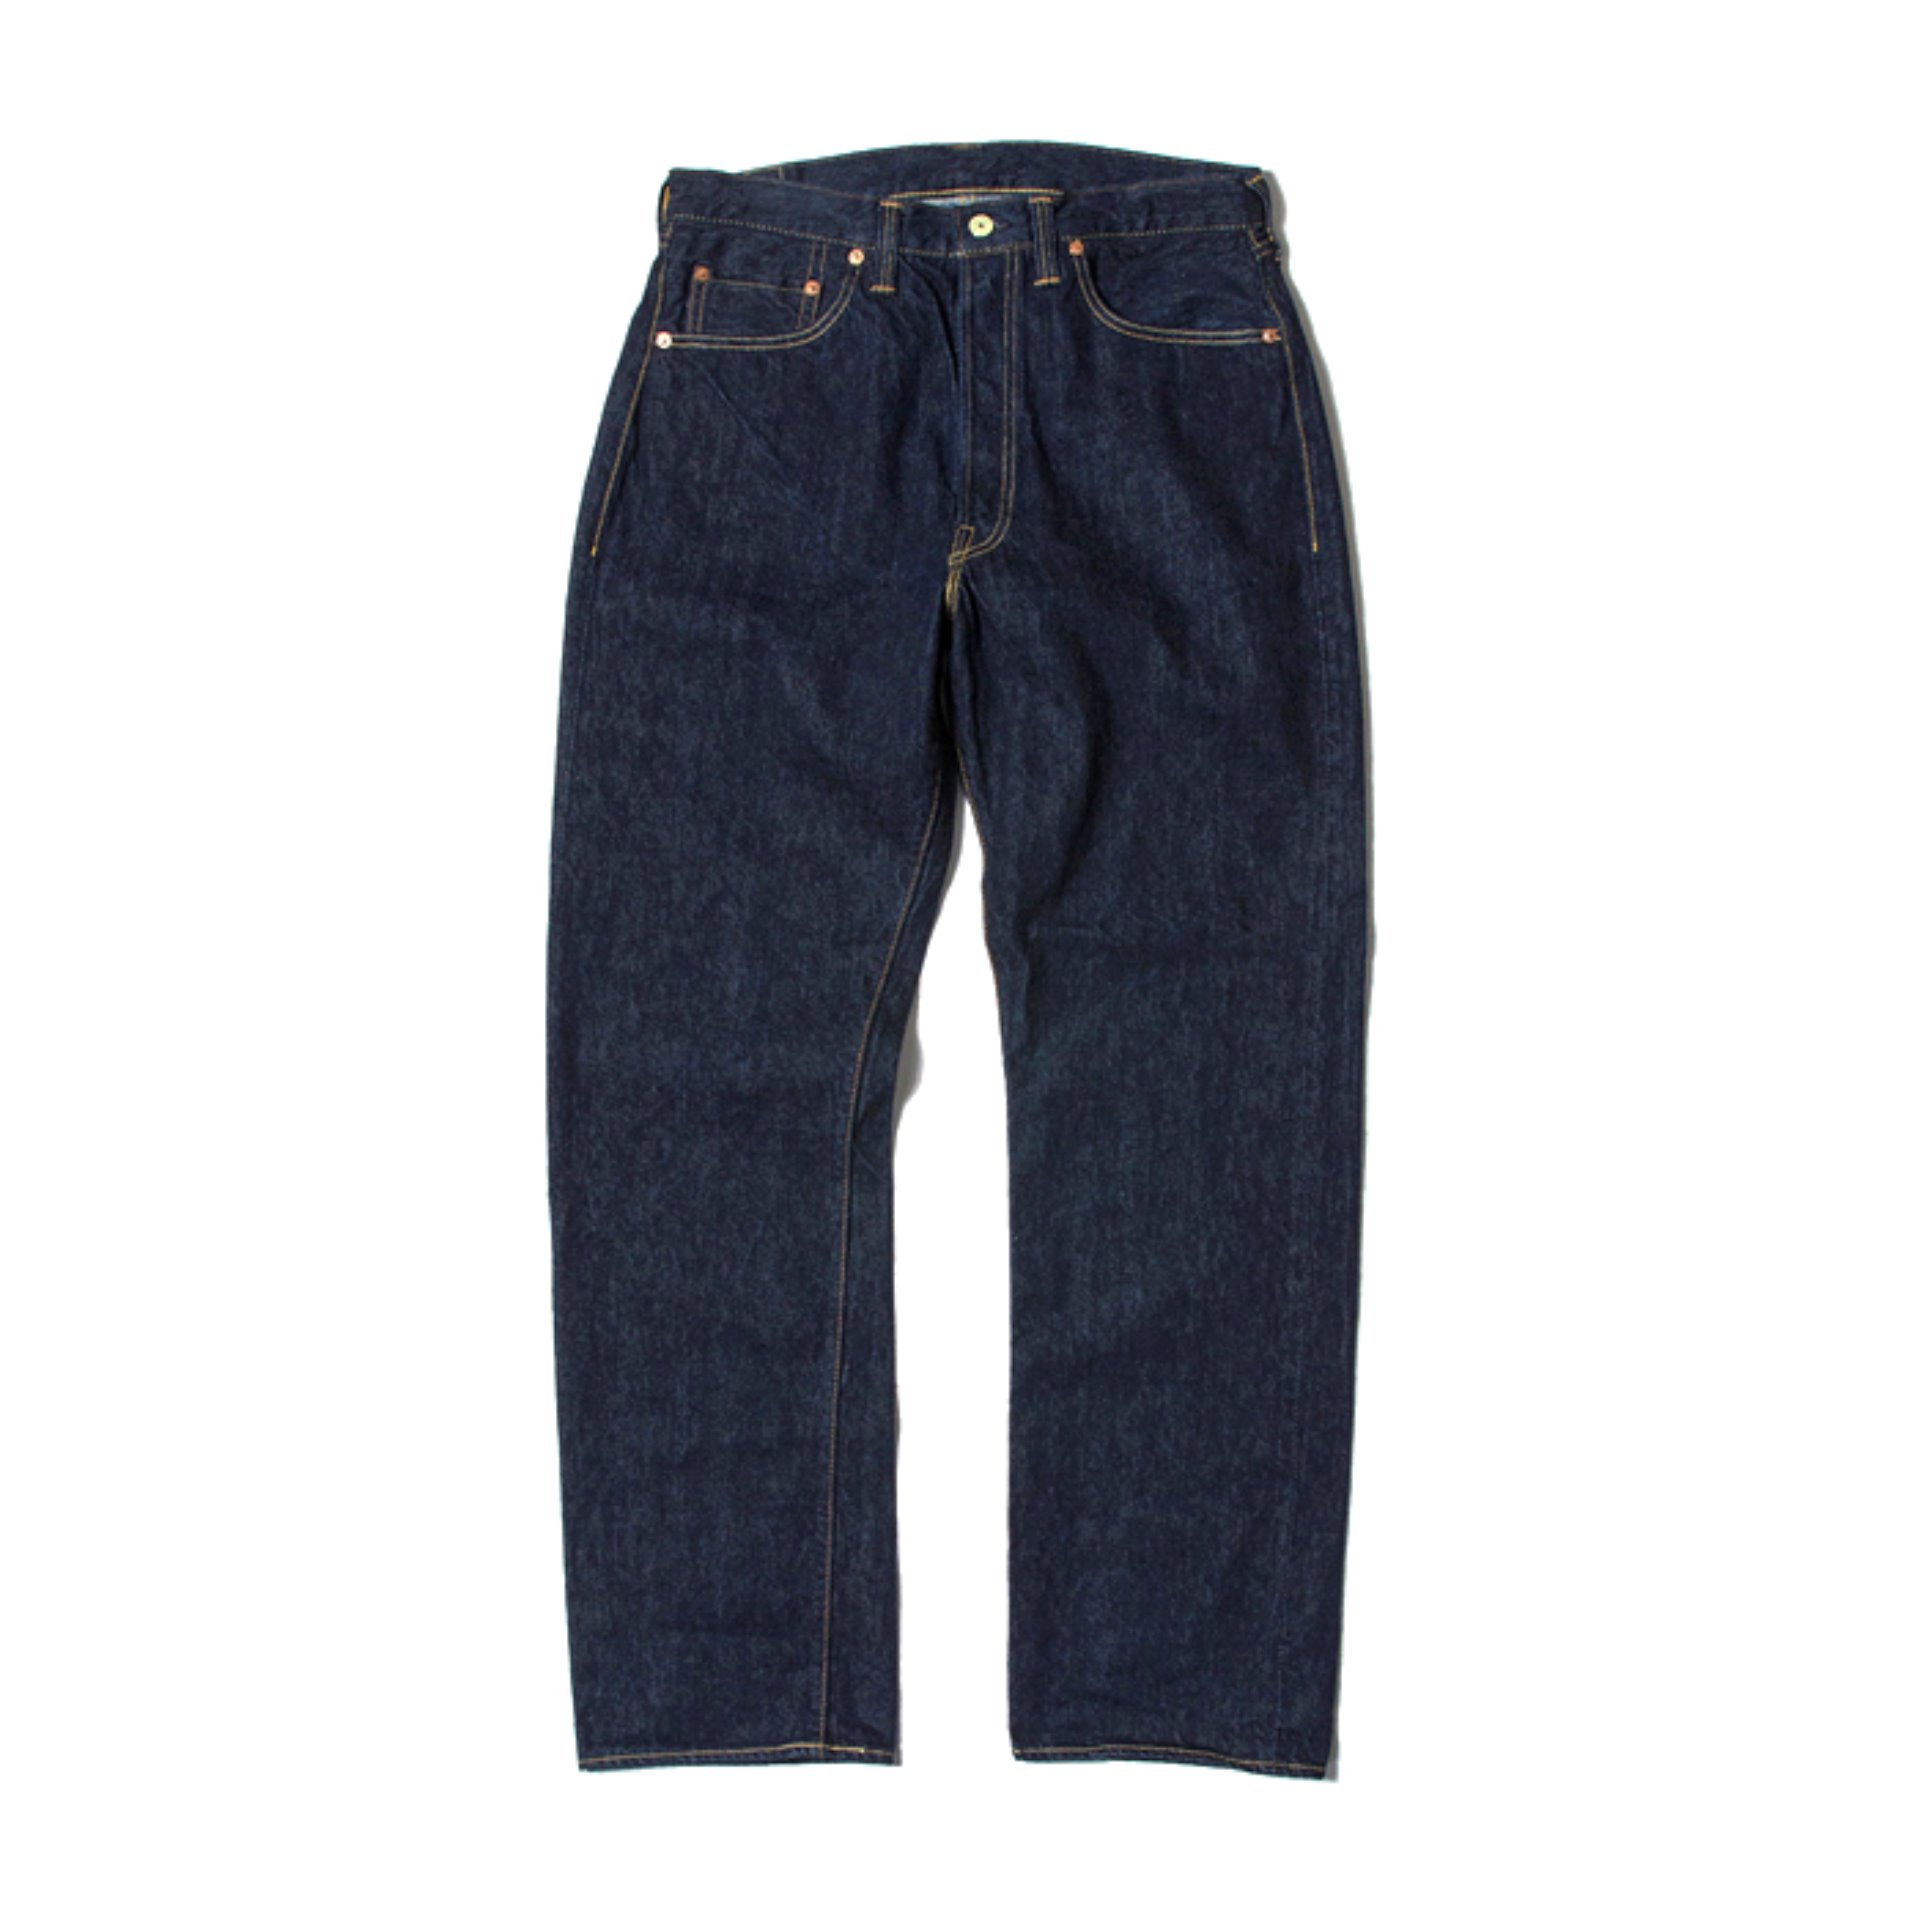 "[VANISHIING WEST]DENIM PANTS""601XX 1947""(DENIM INDIGO)"